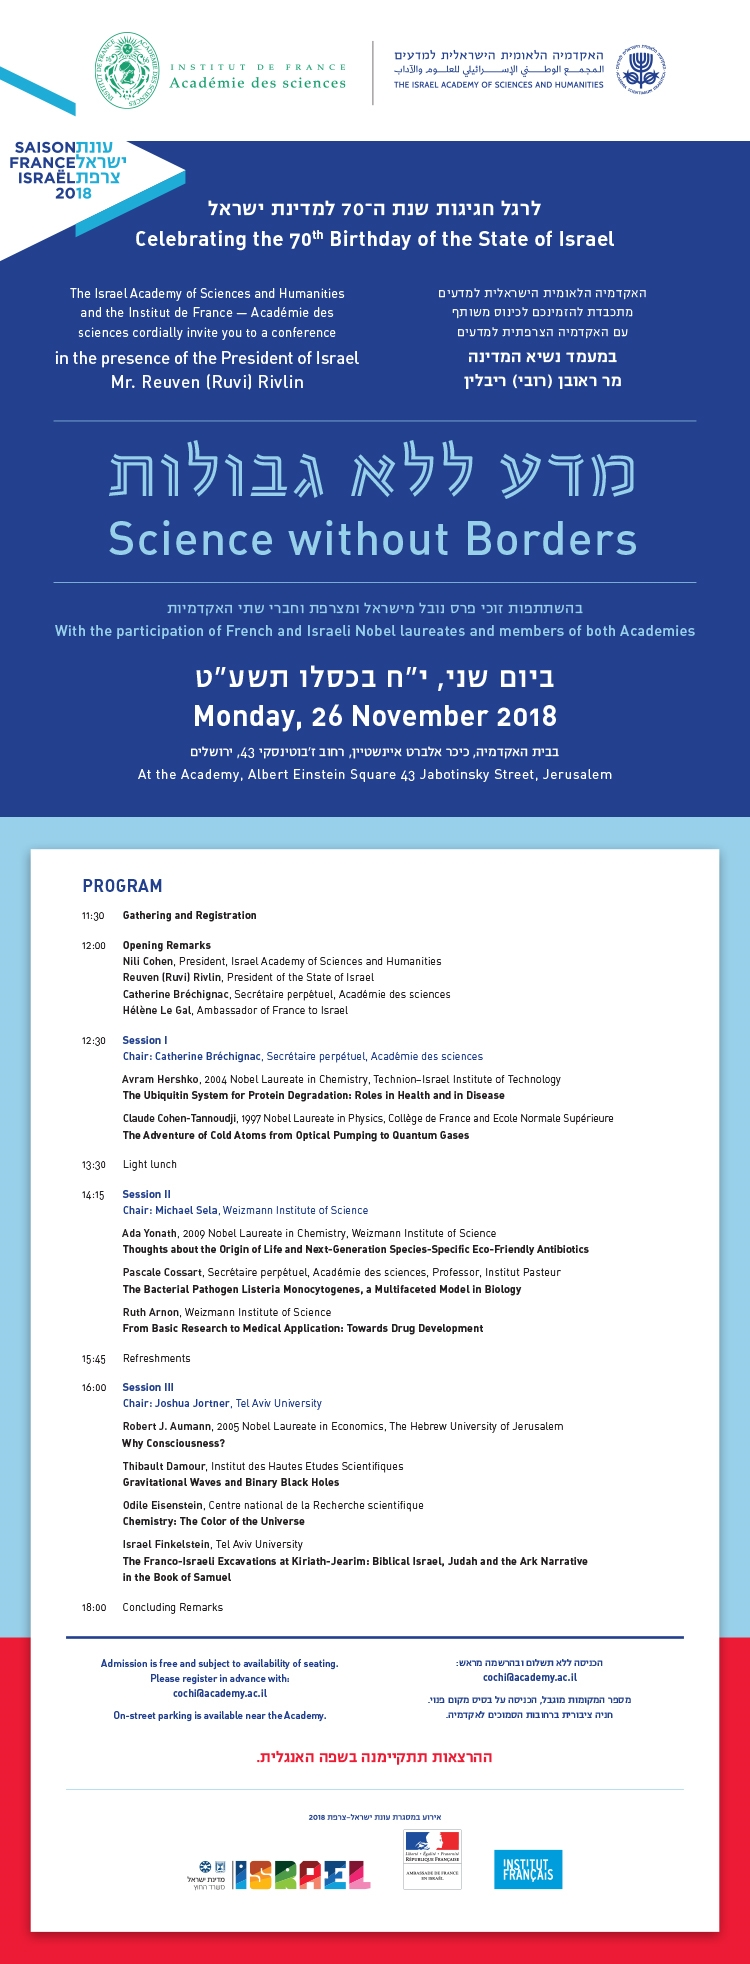 """Science without Borders"" - A joint conference by the Israel Academy and the Institut de France, Academie des Sciences, celebrating the 70th birthday of the State of Israel"